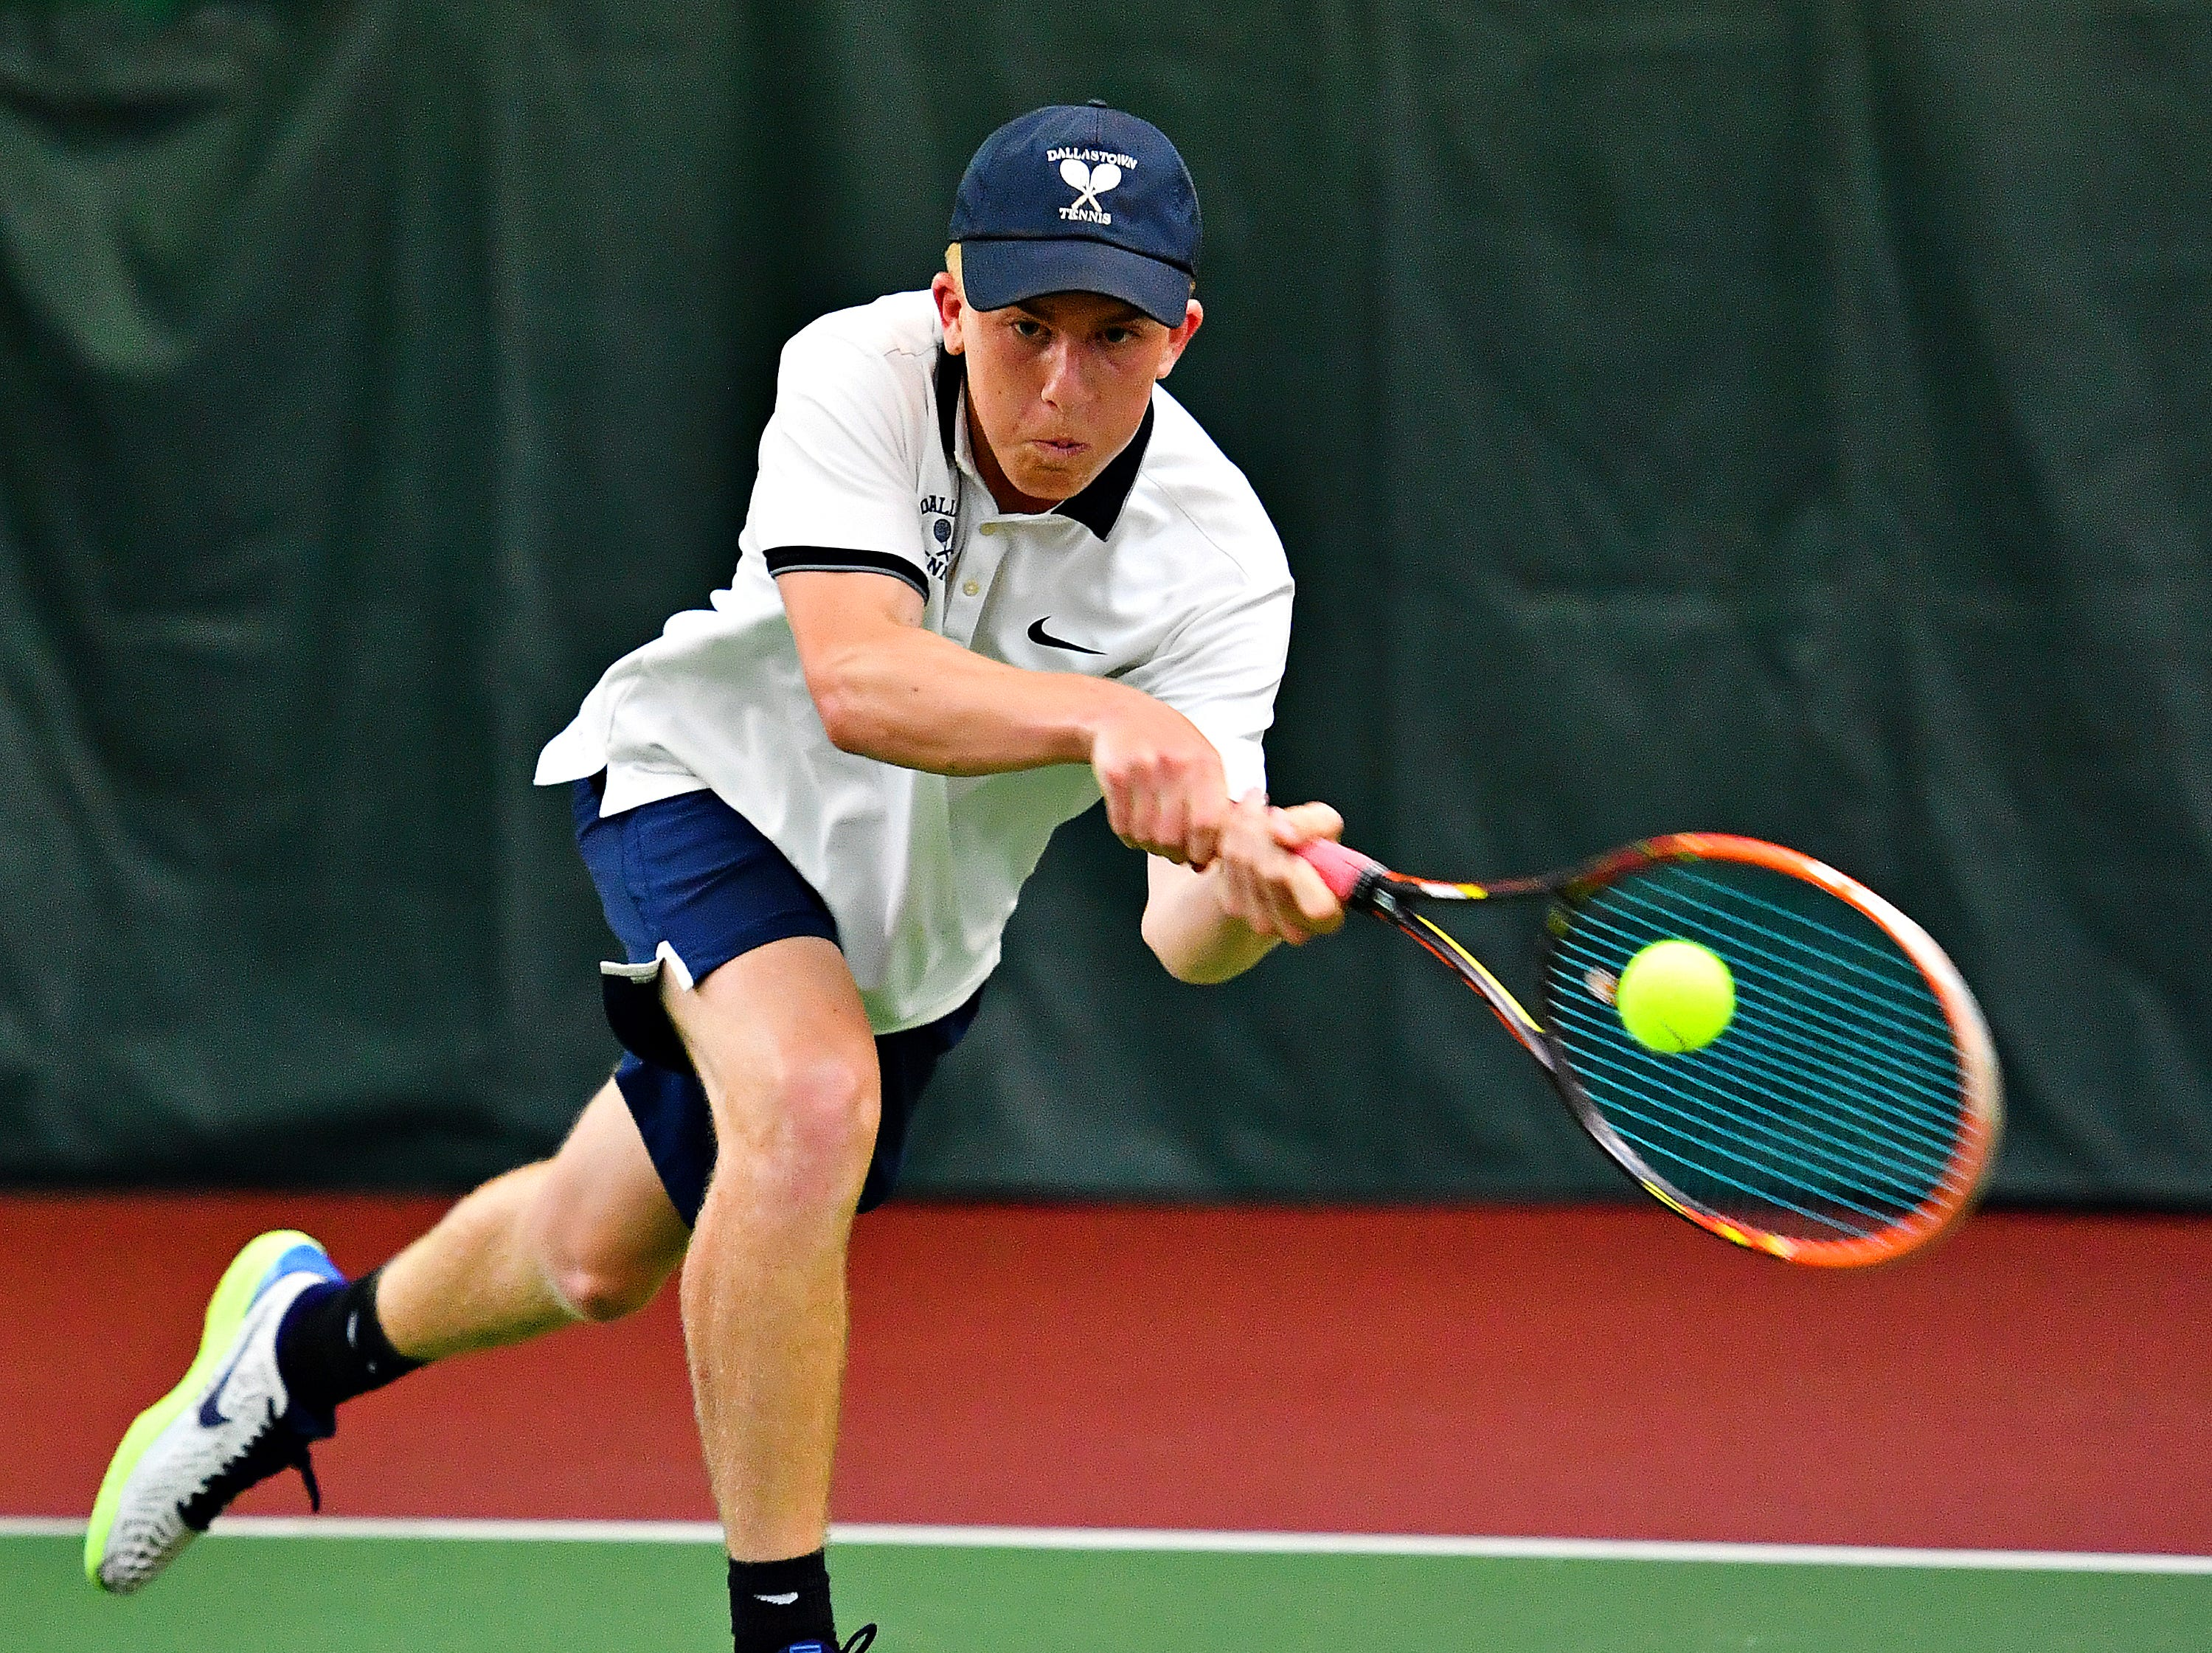 Dallastown's Cameron Koons returns the ball to Hershey during District III, Class 3-A boys' tennis team championship doubles action at Hershey Raquet Club in Hershey, Thursday, May 9, 2019. Dallastown would win the match, but Hershey would secure the title. Dawn J. Sagert photo